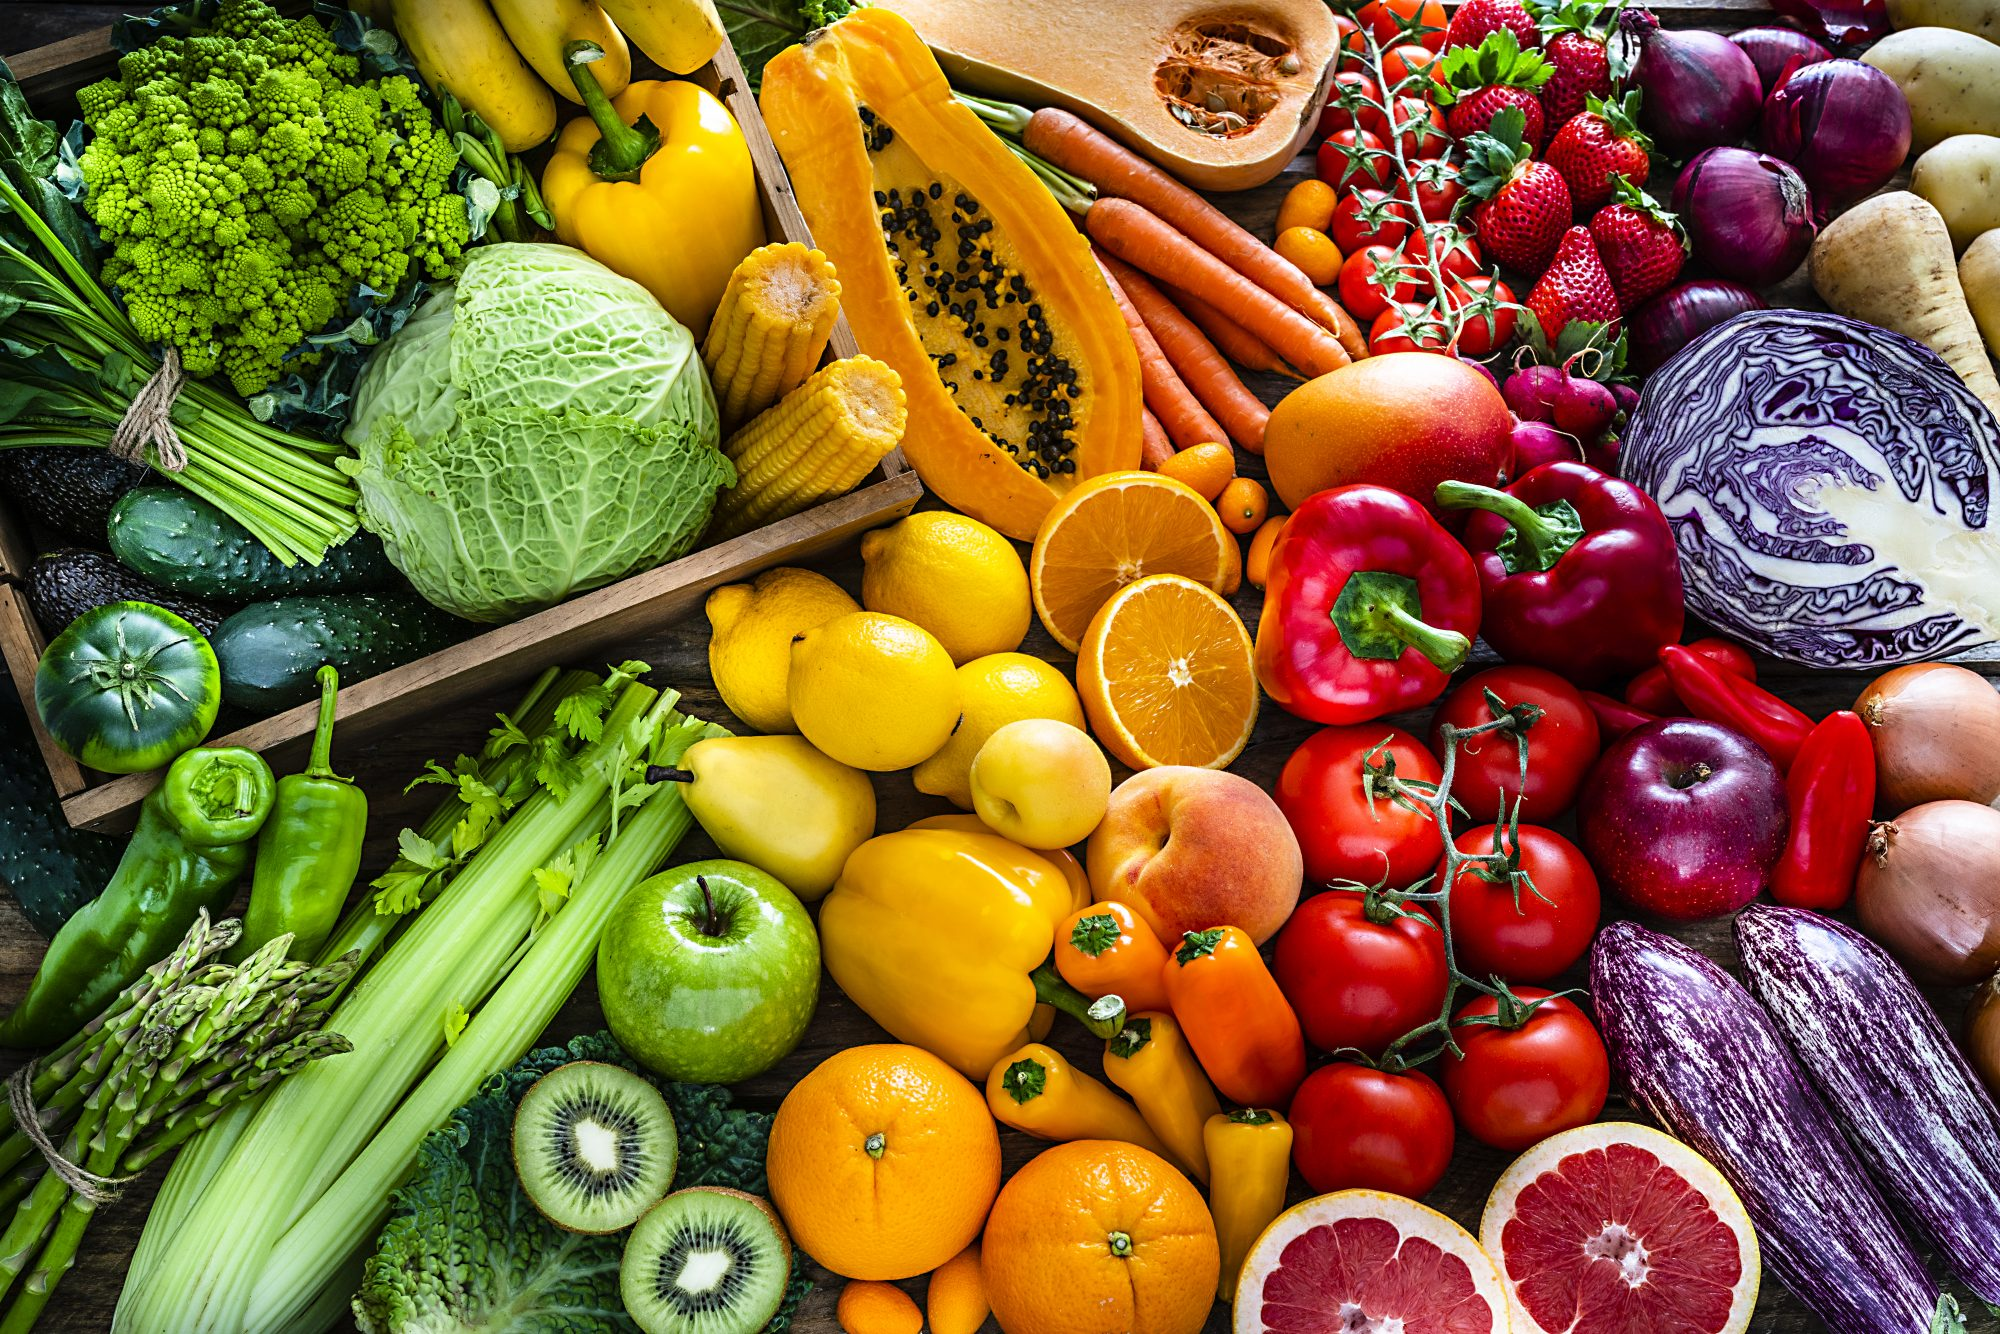 various colorful fruits and vegetables